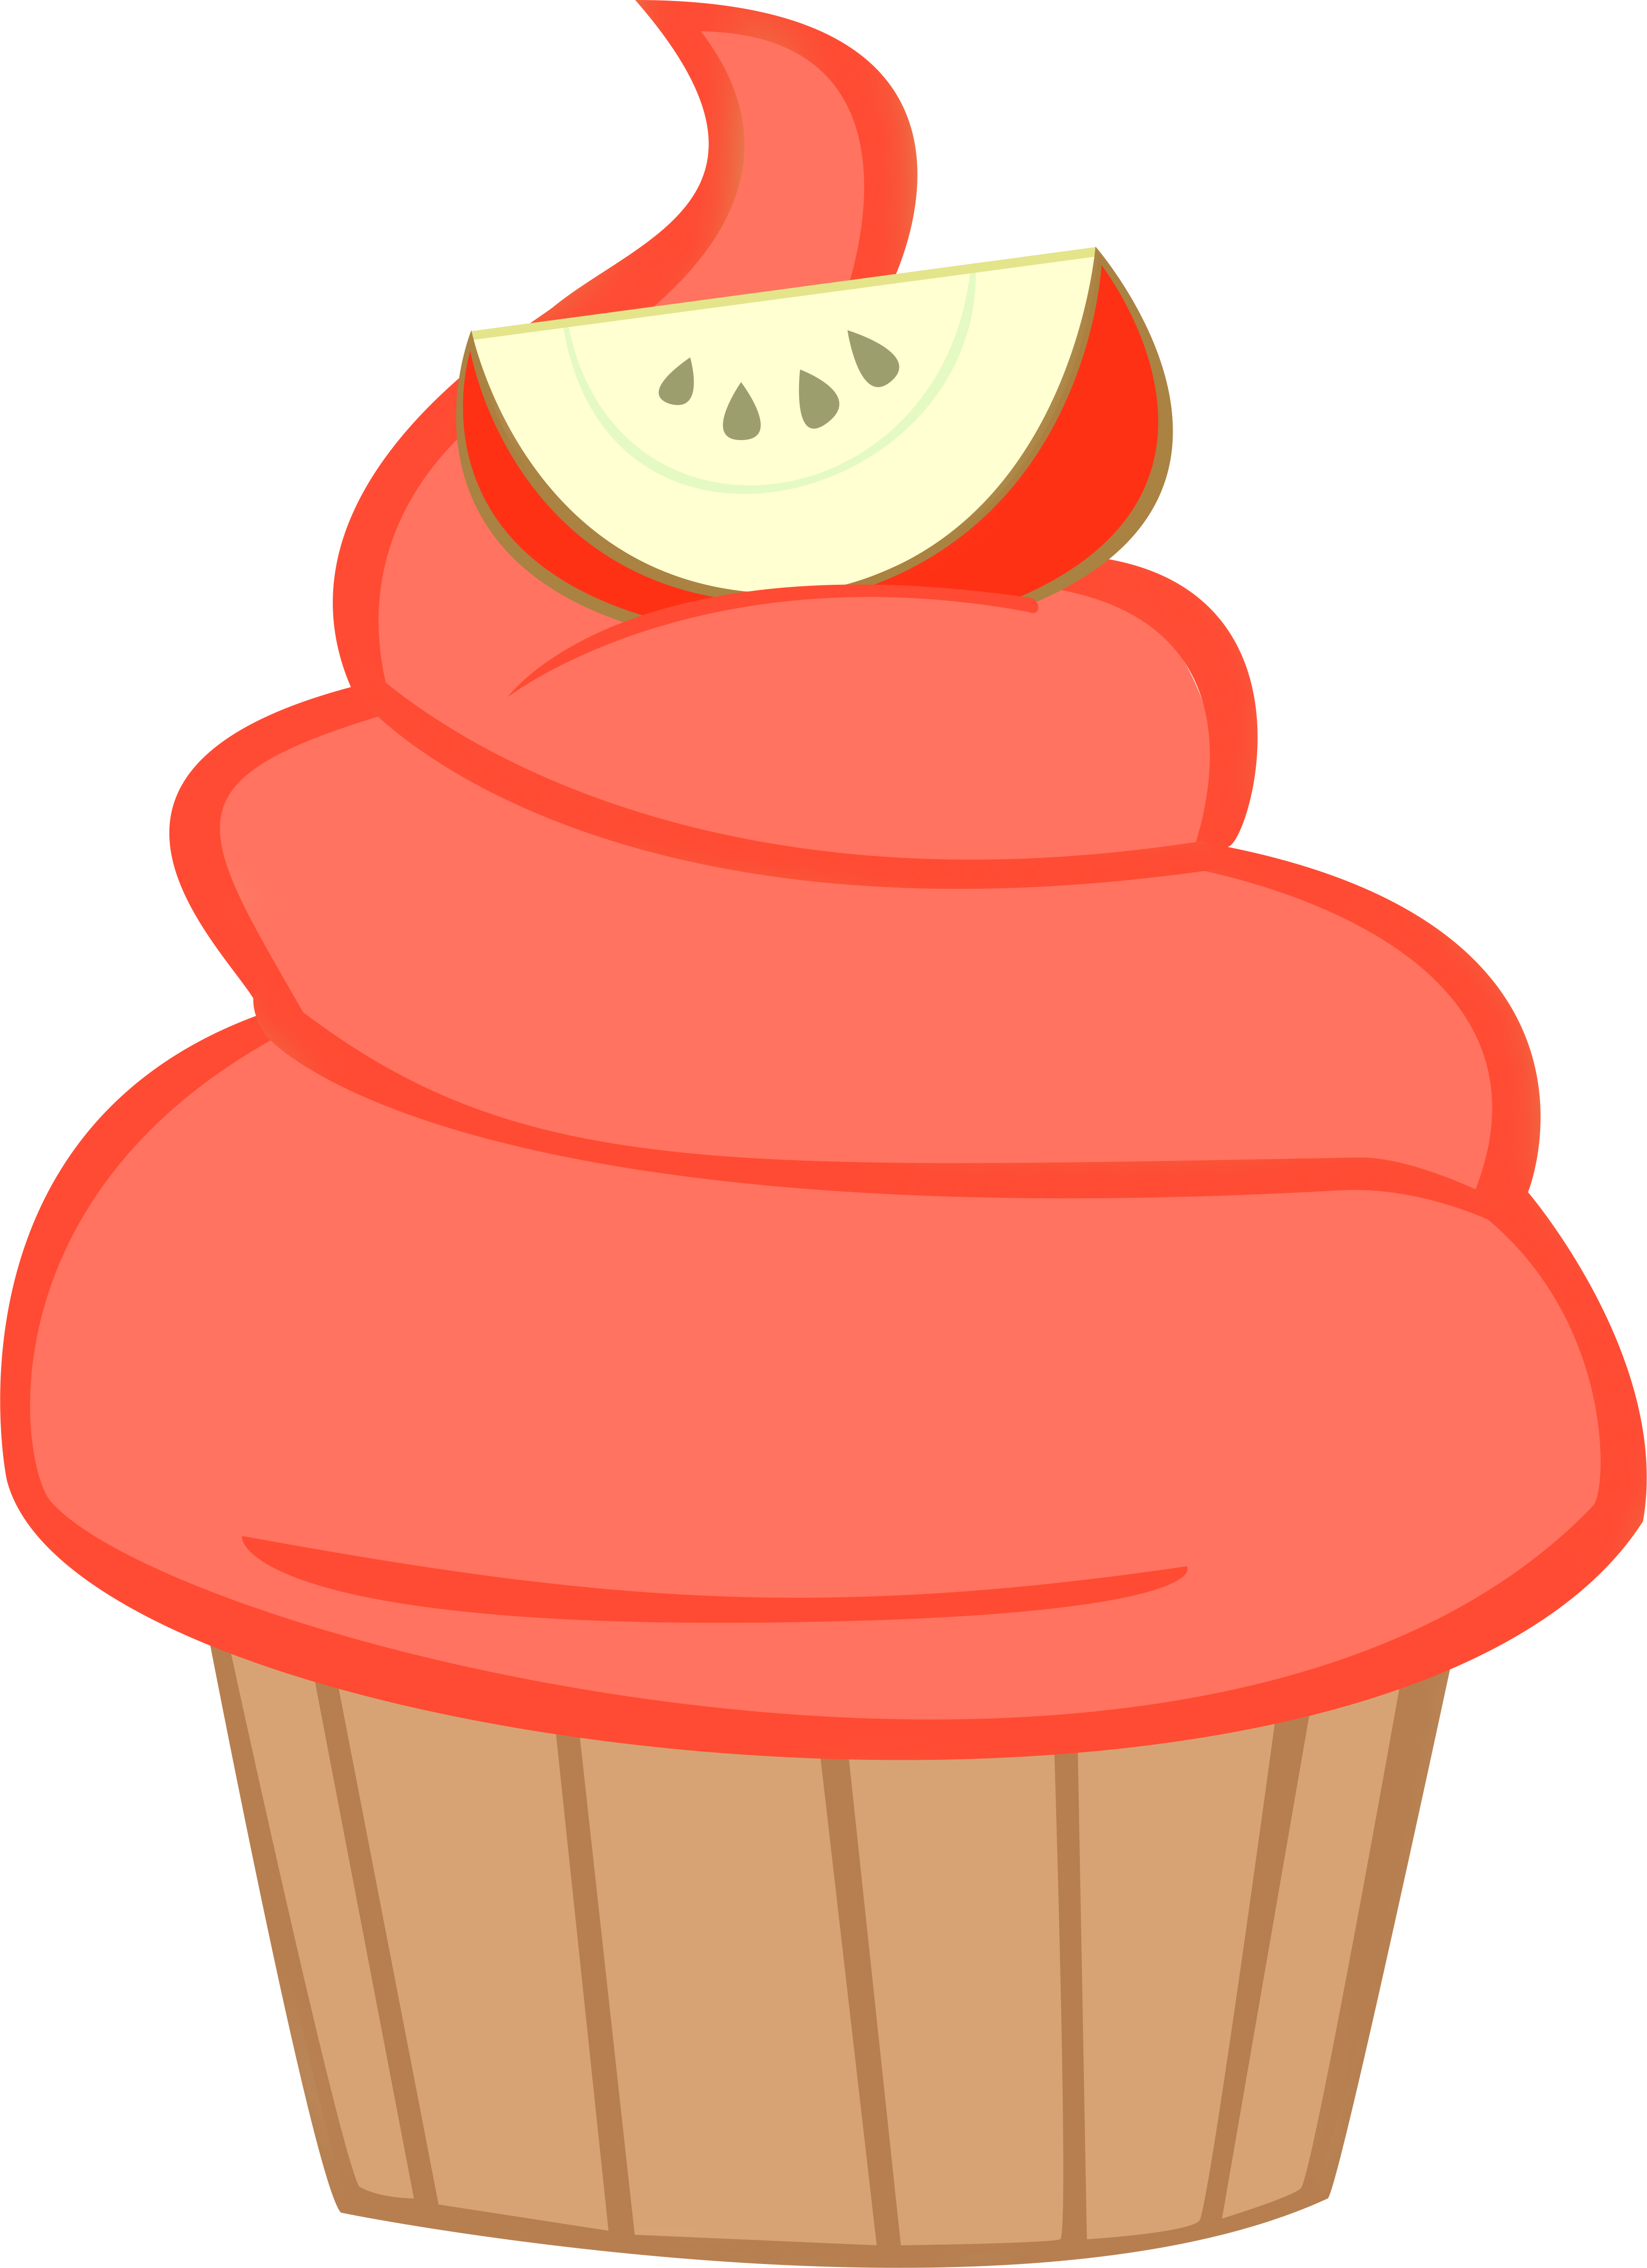 Caramel apple clipart images clip transparent library Image result for mlp cupcake vector   MLP & EQG objects and ... clip transparent library